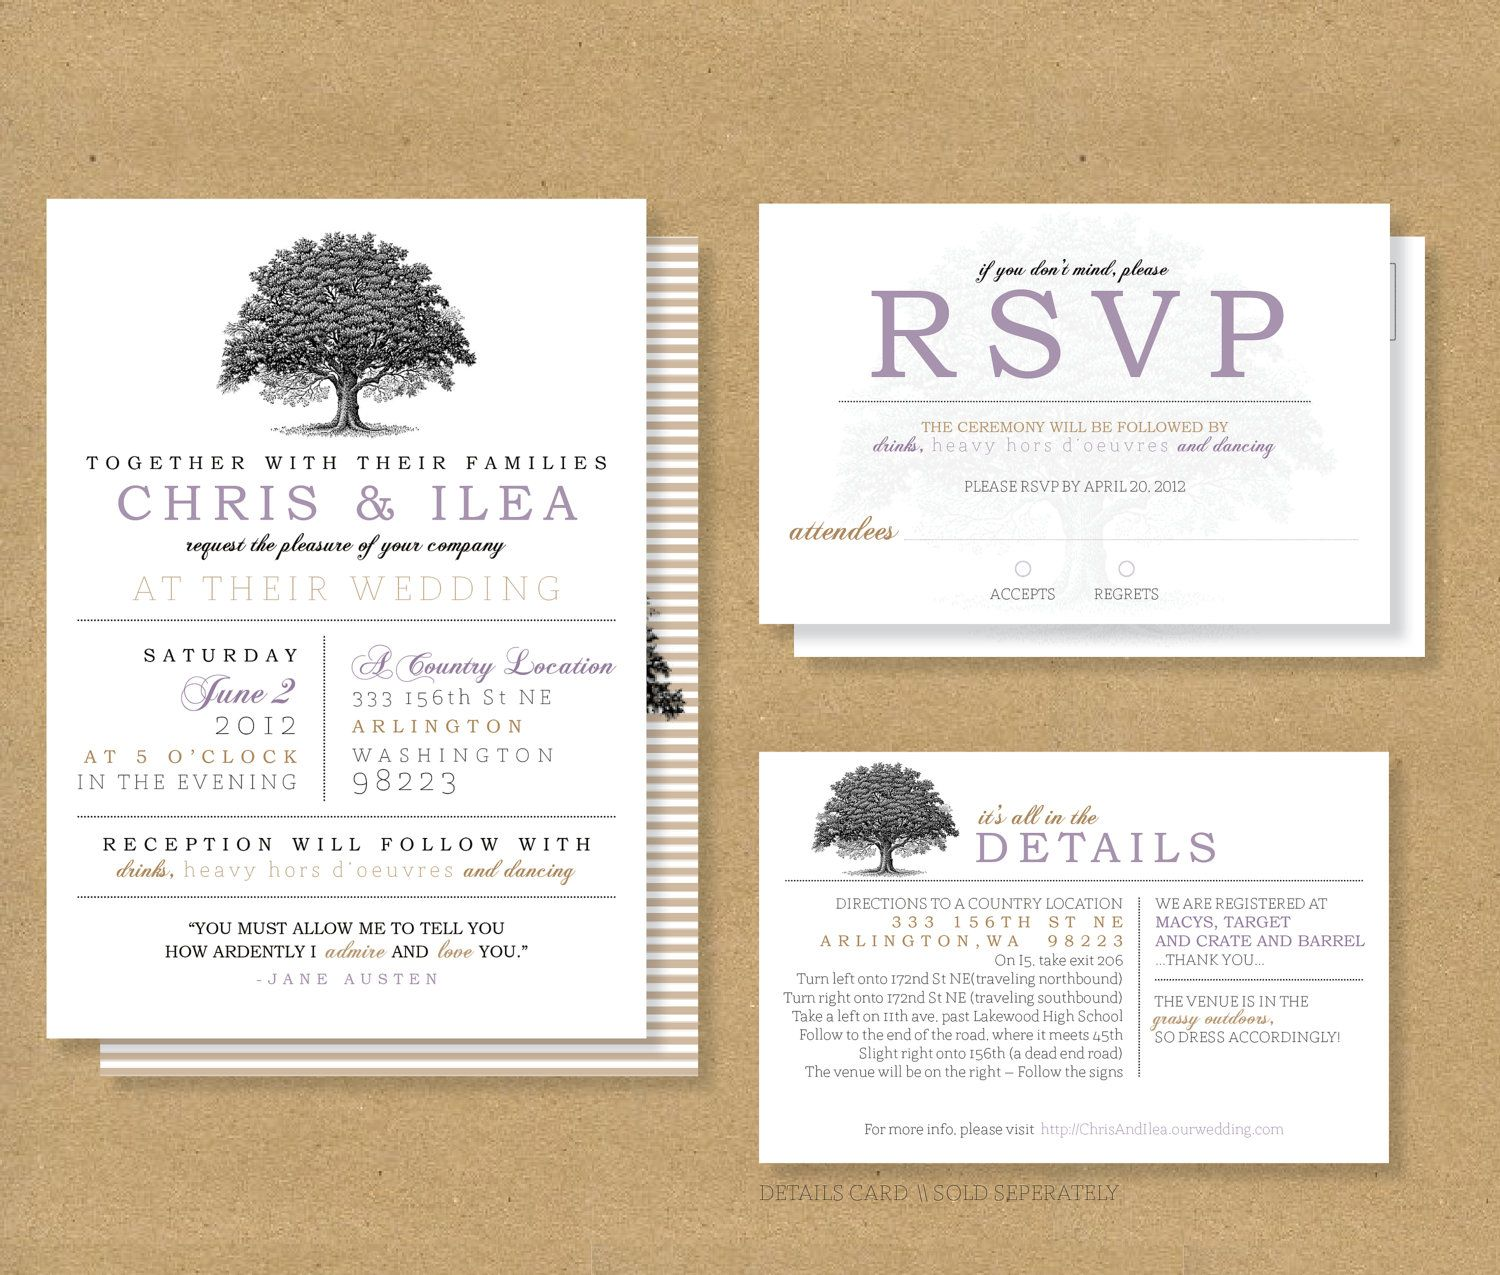 Wedding Invitation Wedding Rsvp Wording Samples Tips Wedding Rsvp